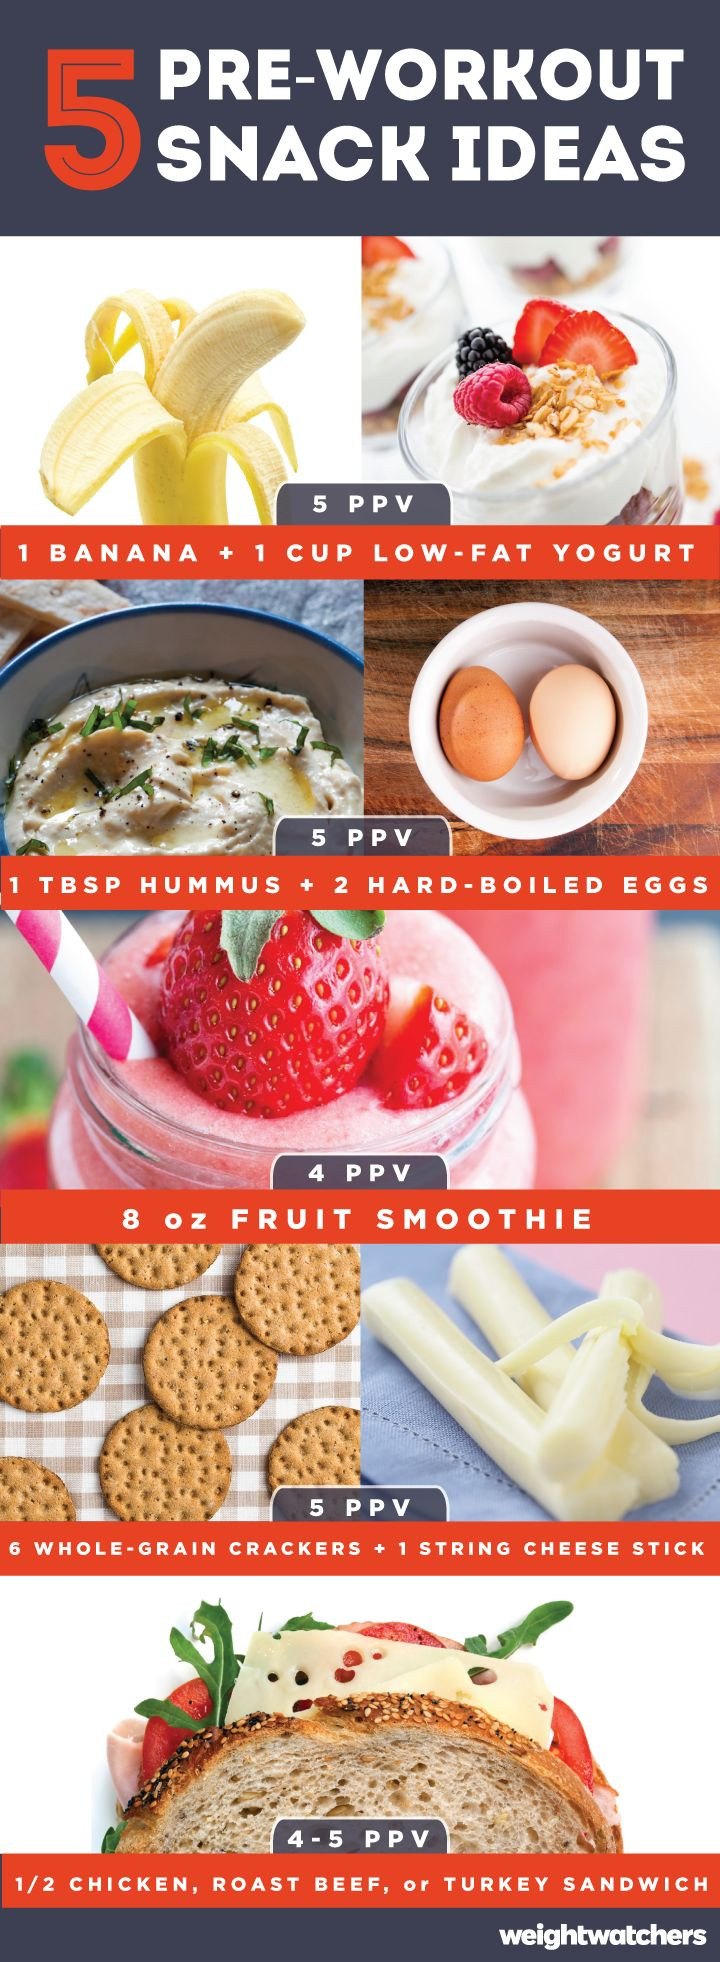 Healthy Pre Workout Breakfast  Best 25 Pre workout snack ideas on Pinterest